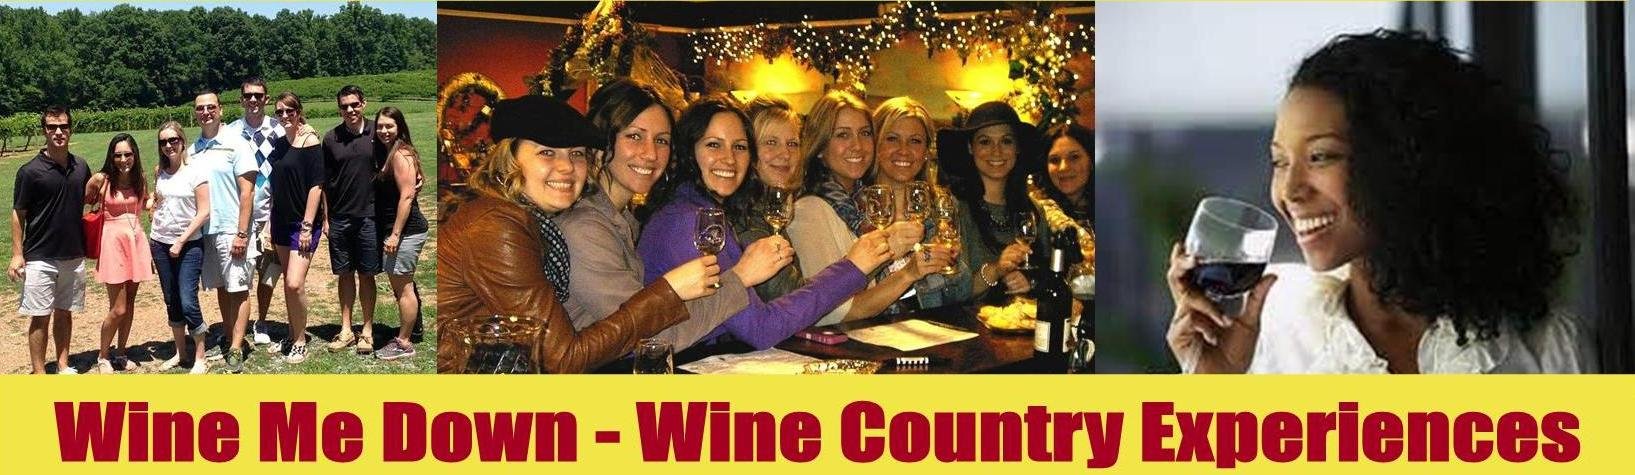 Wine Me Down: Deliciously Different Wine Country Experiences!